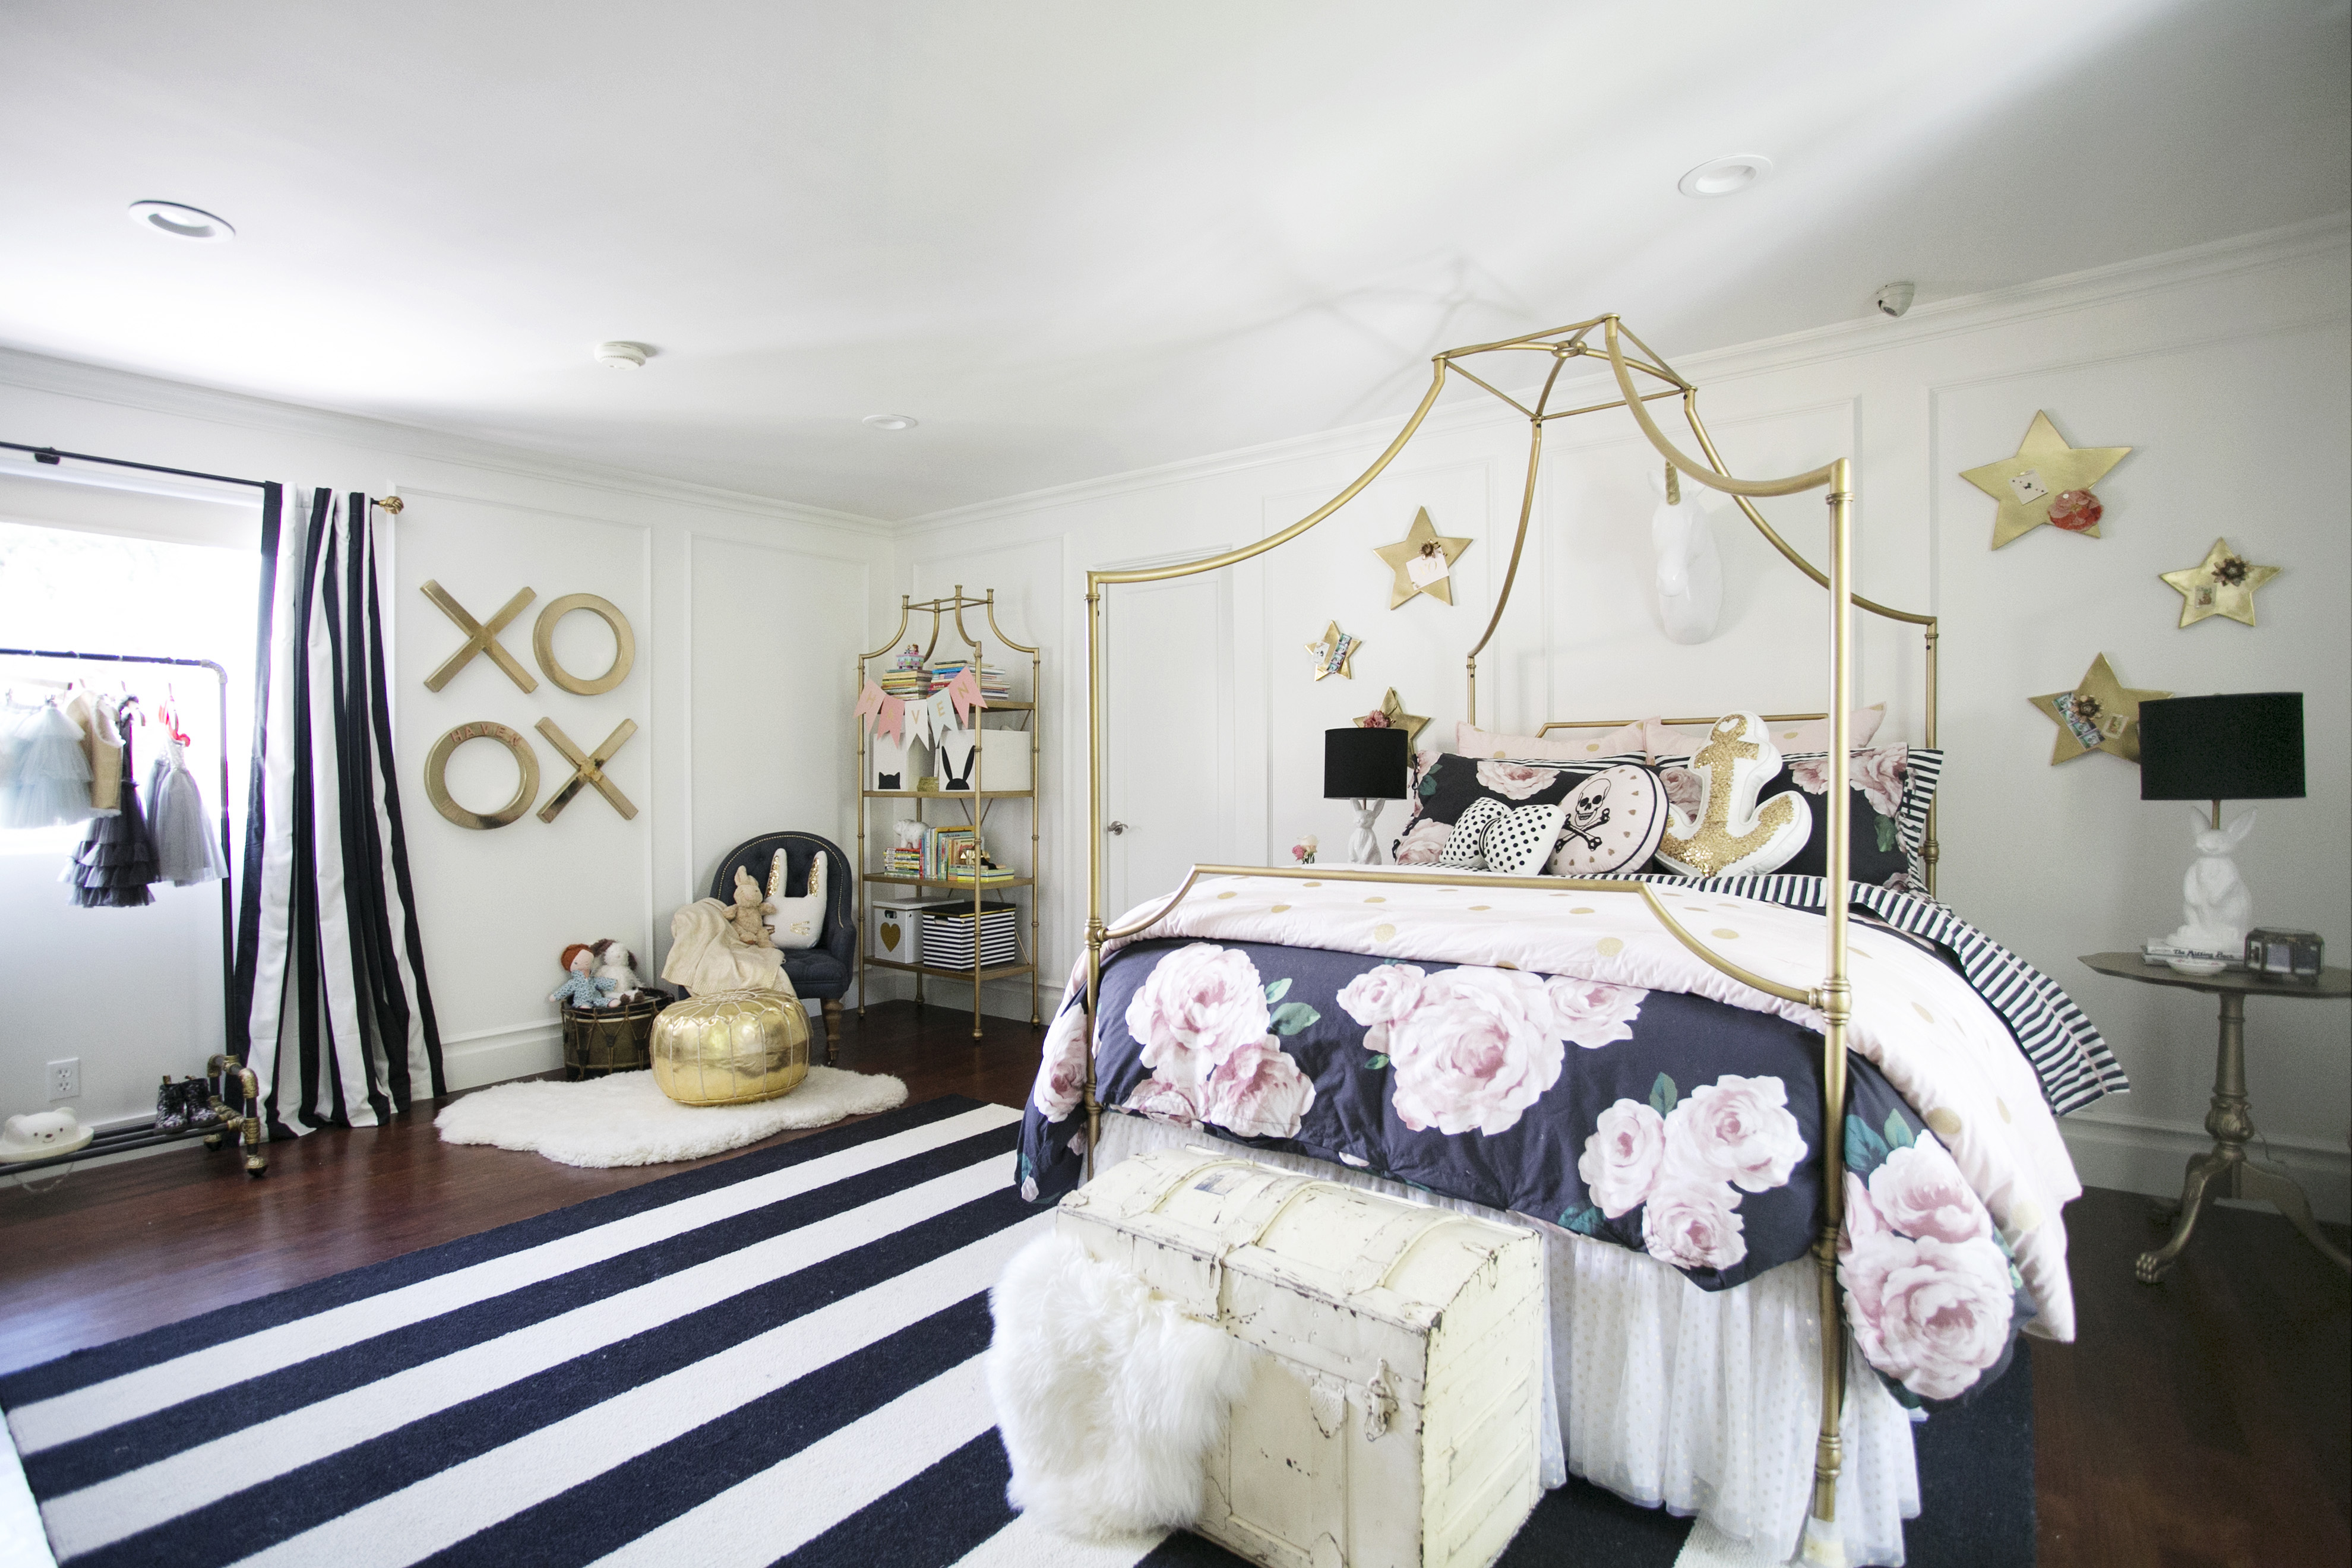 How To Transition A Kid39s Room Into A Dream Teen Room